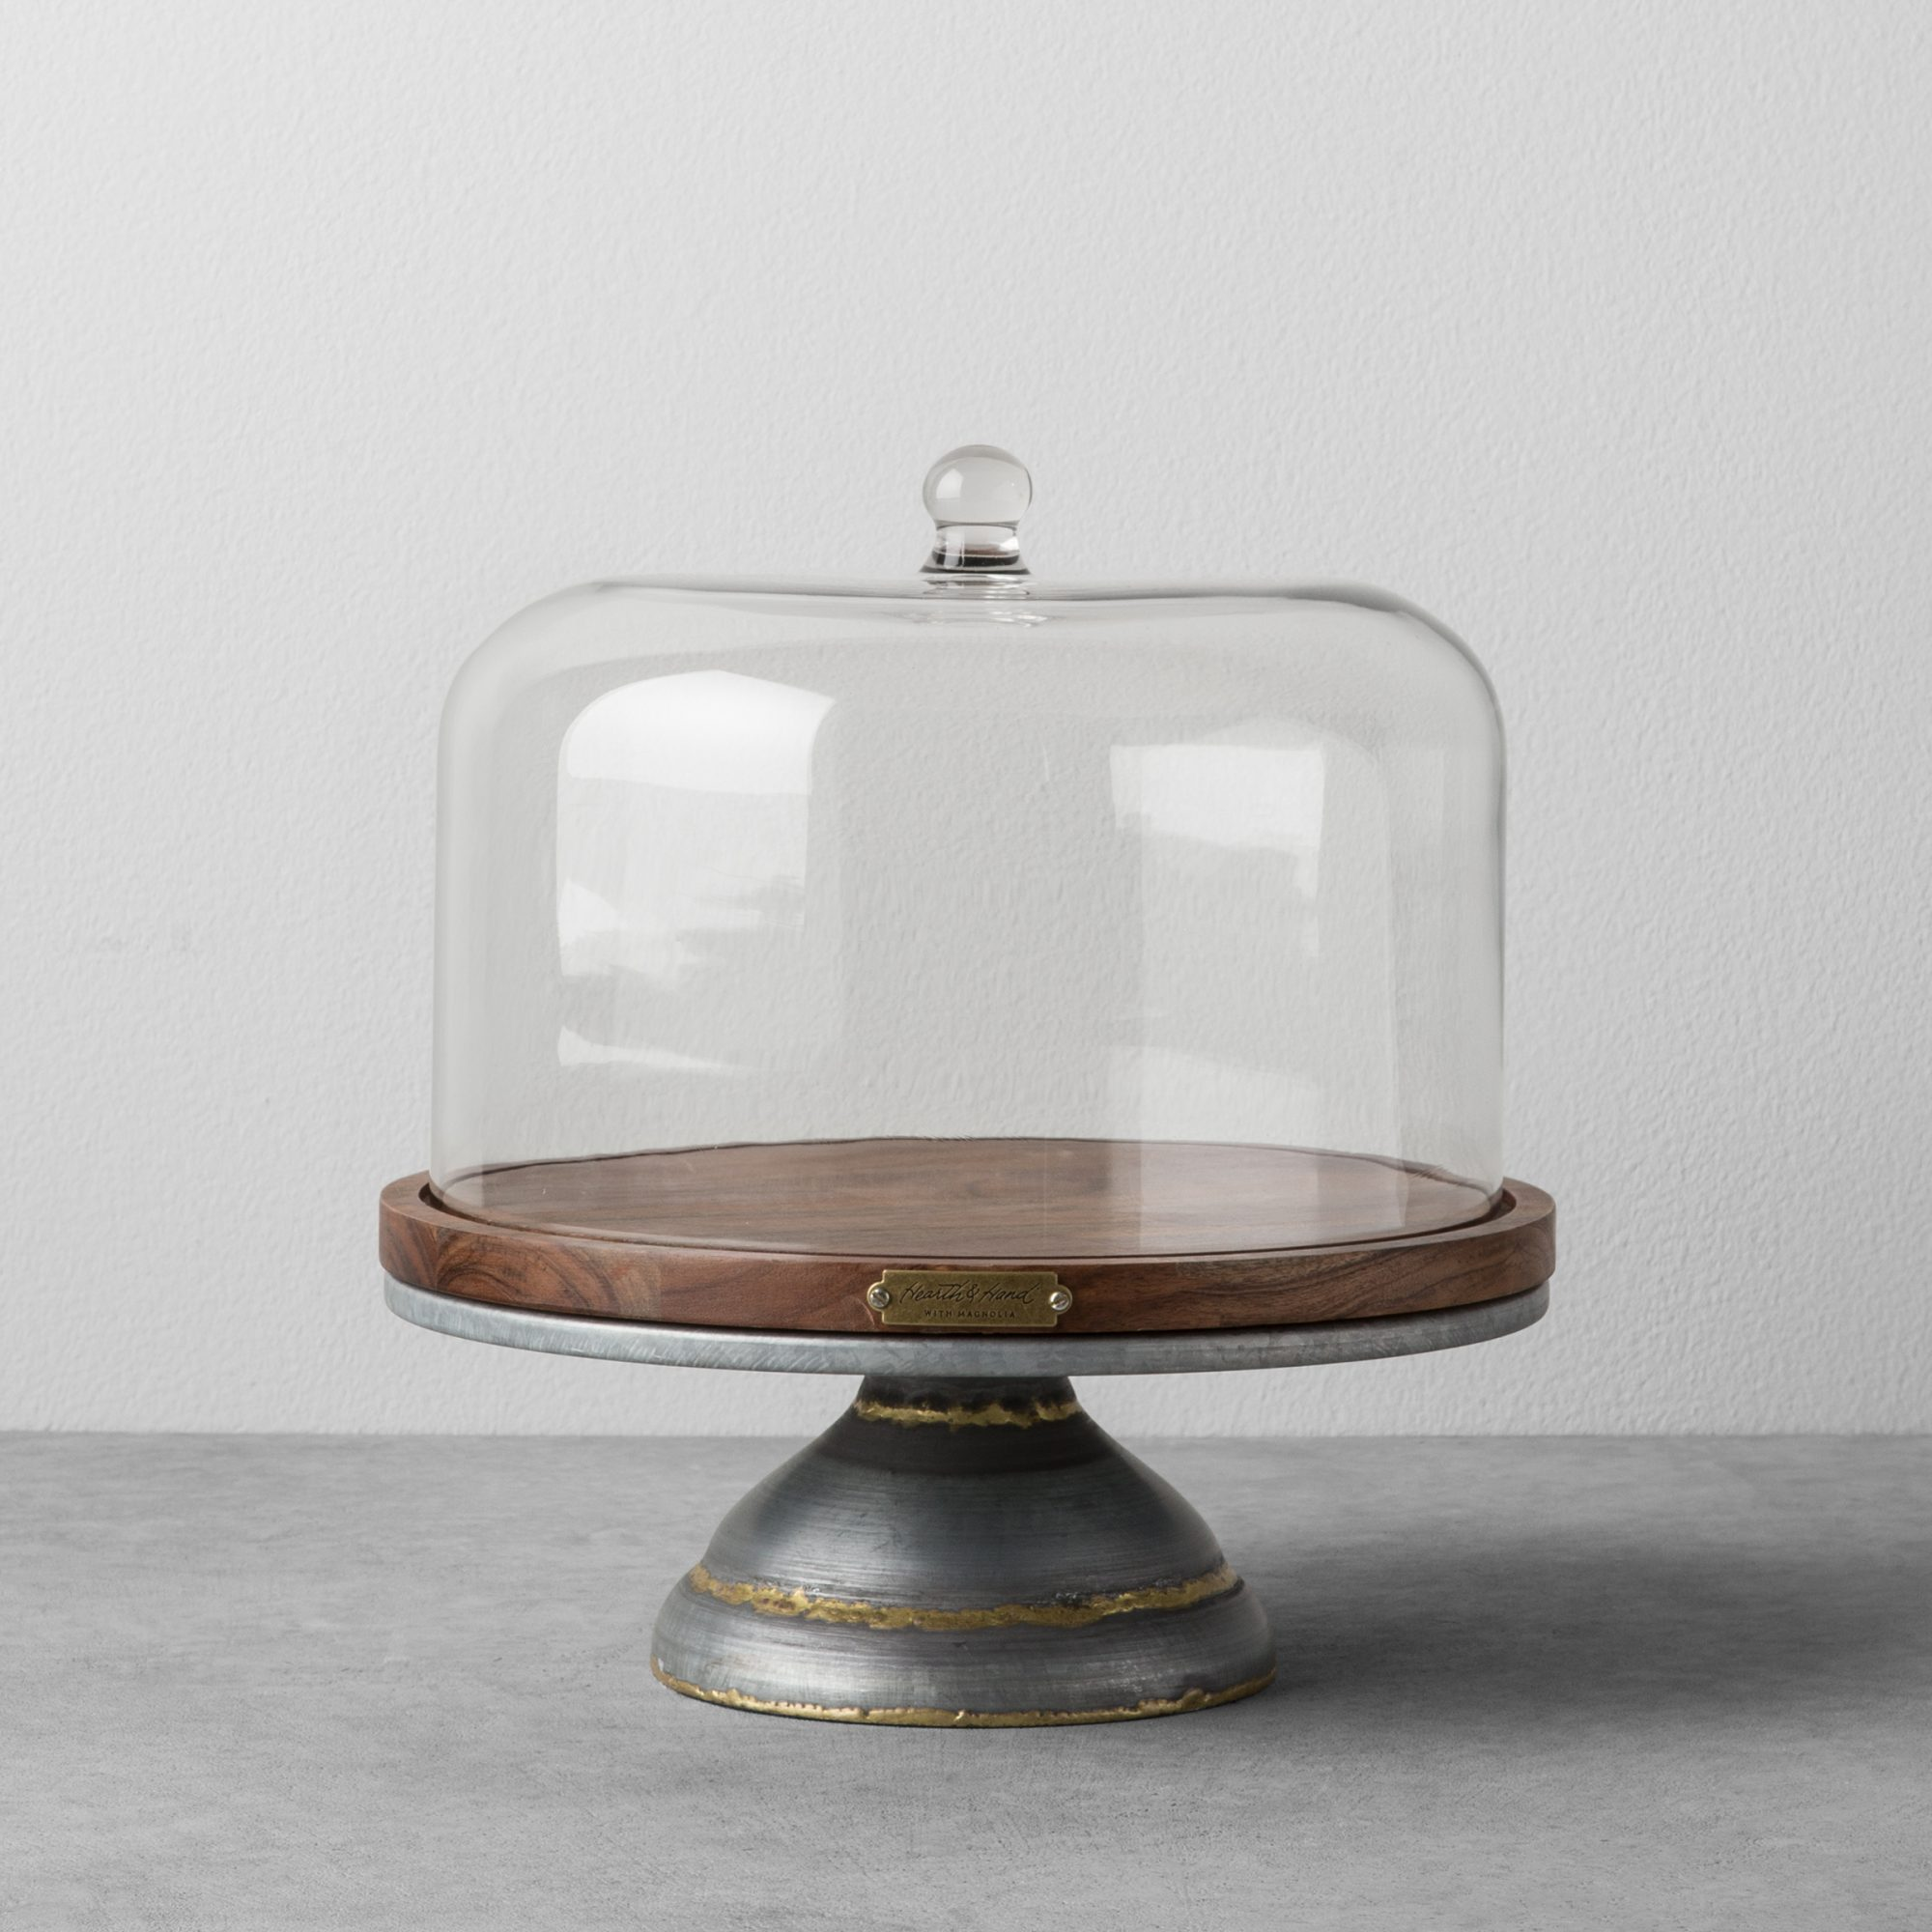 Wood and Metal Covered Cake Stand on a grey background